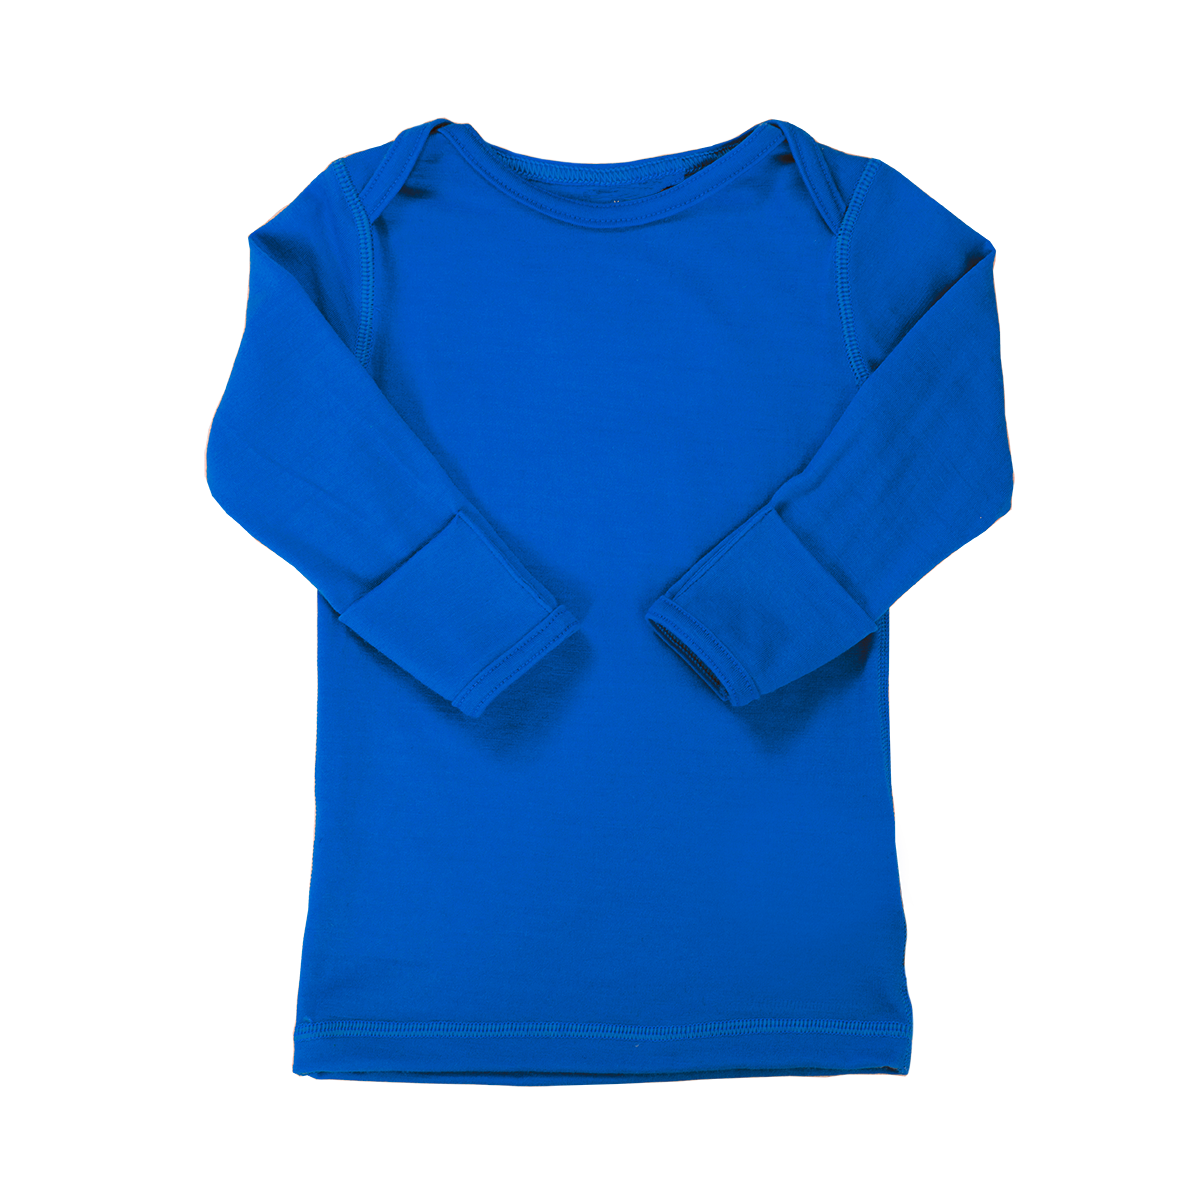 Iksplor Kids' Merino Wool Thermal Base Layer Top - Royal Blue